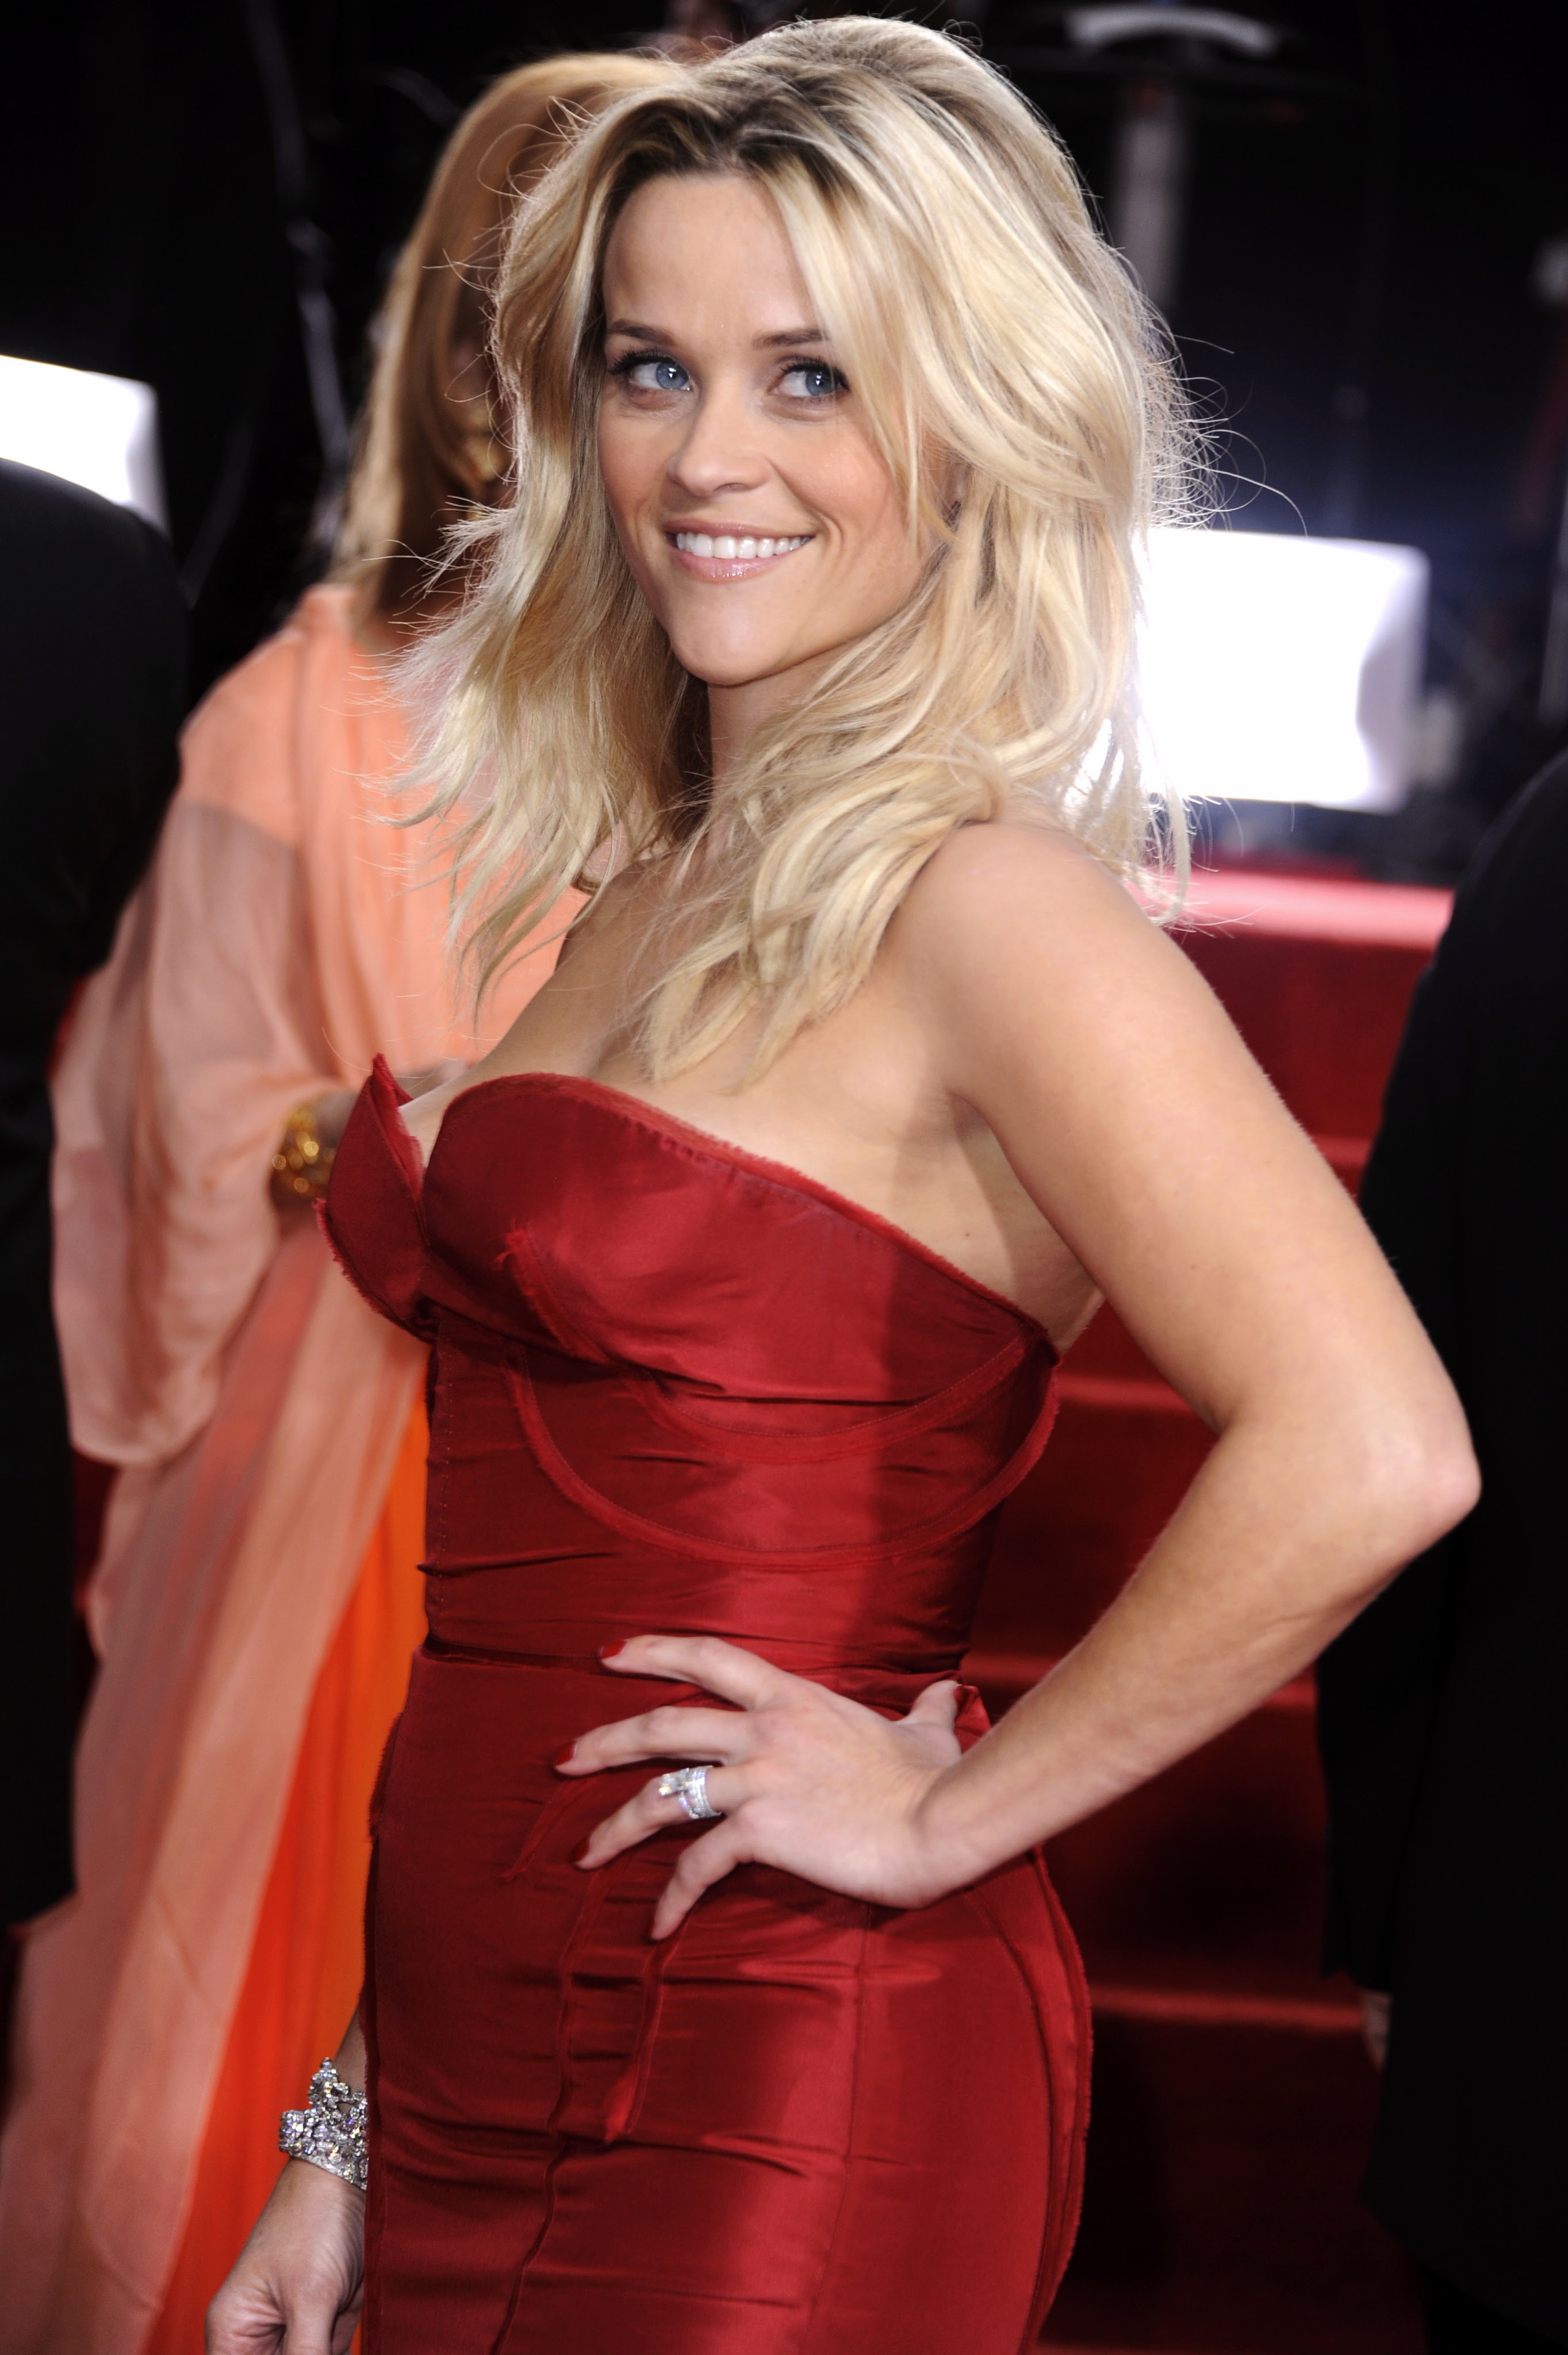 Reese witherspoon this means war lingerie - 2 10